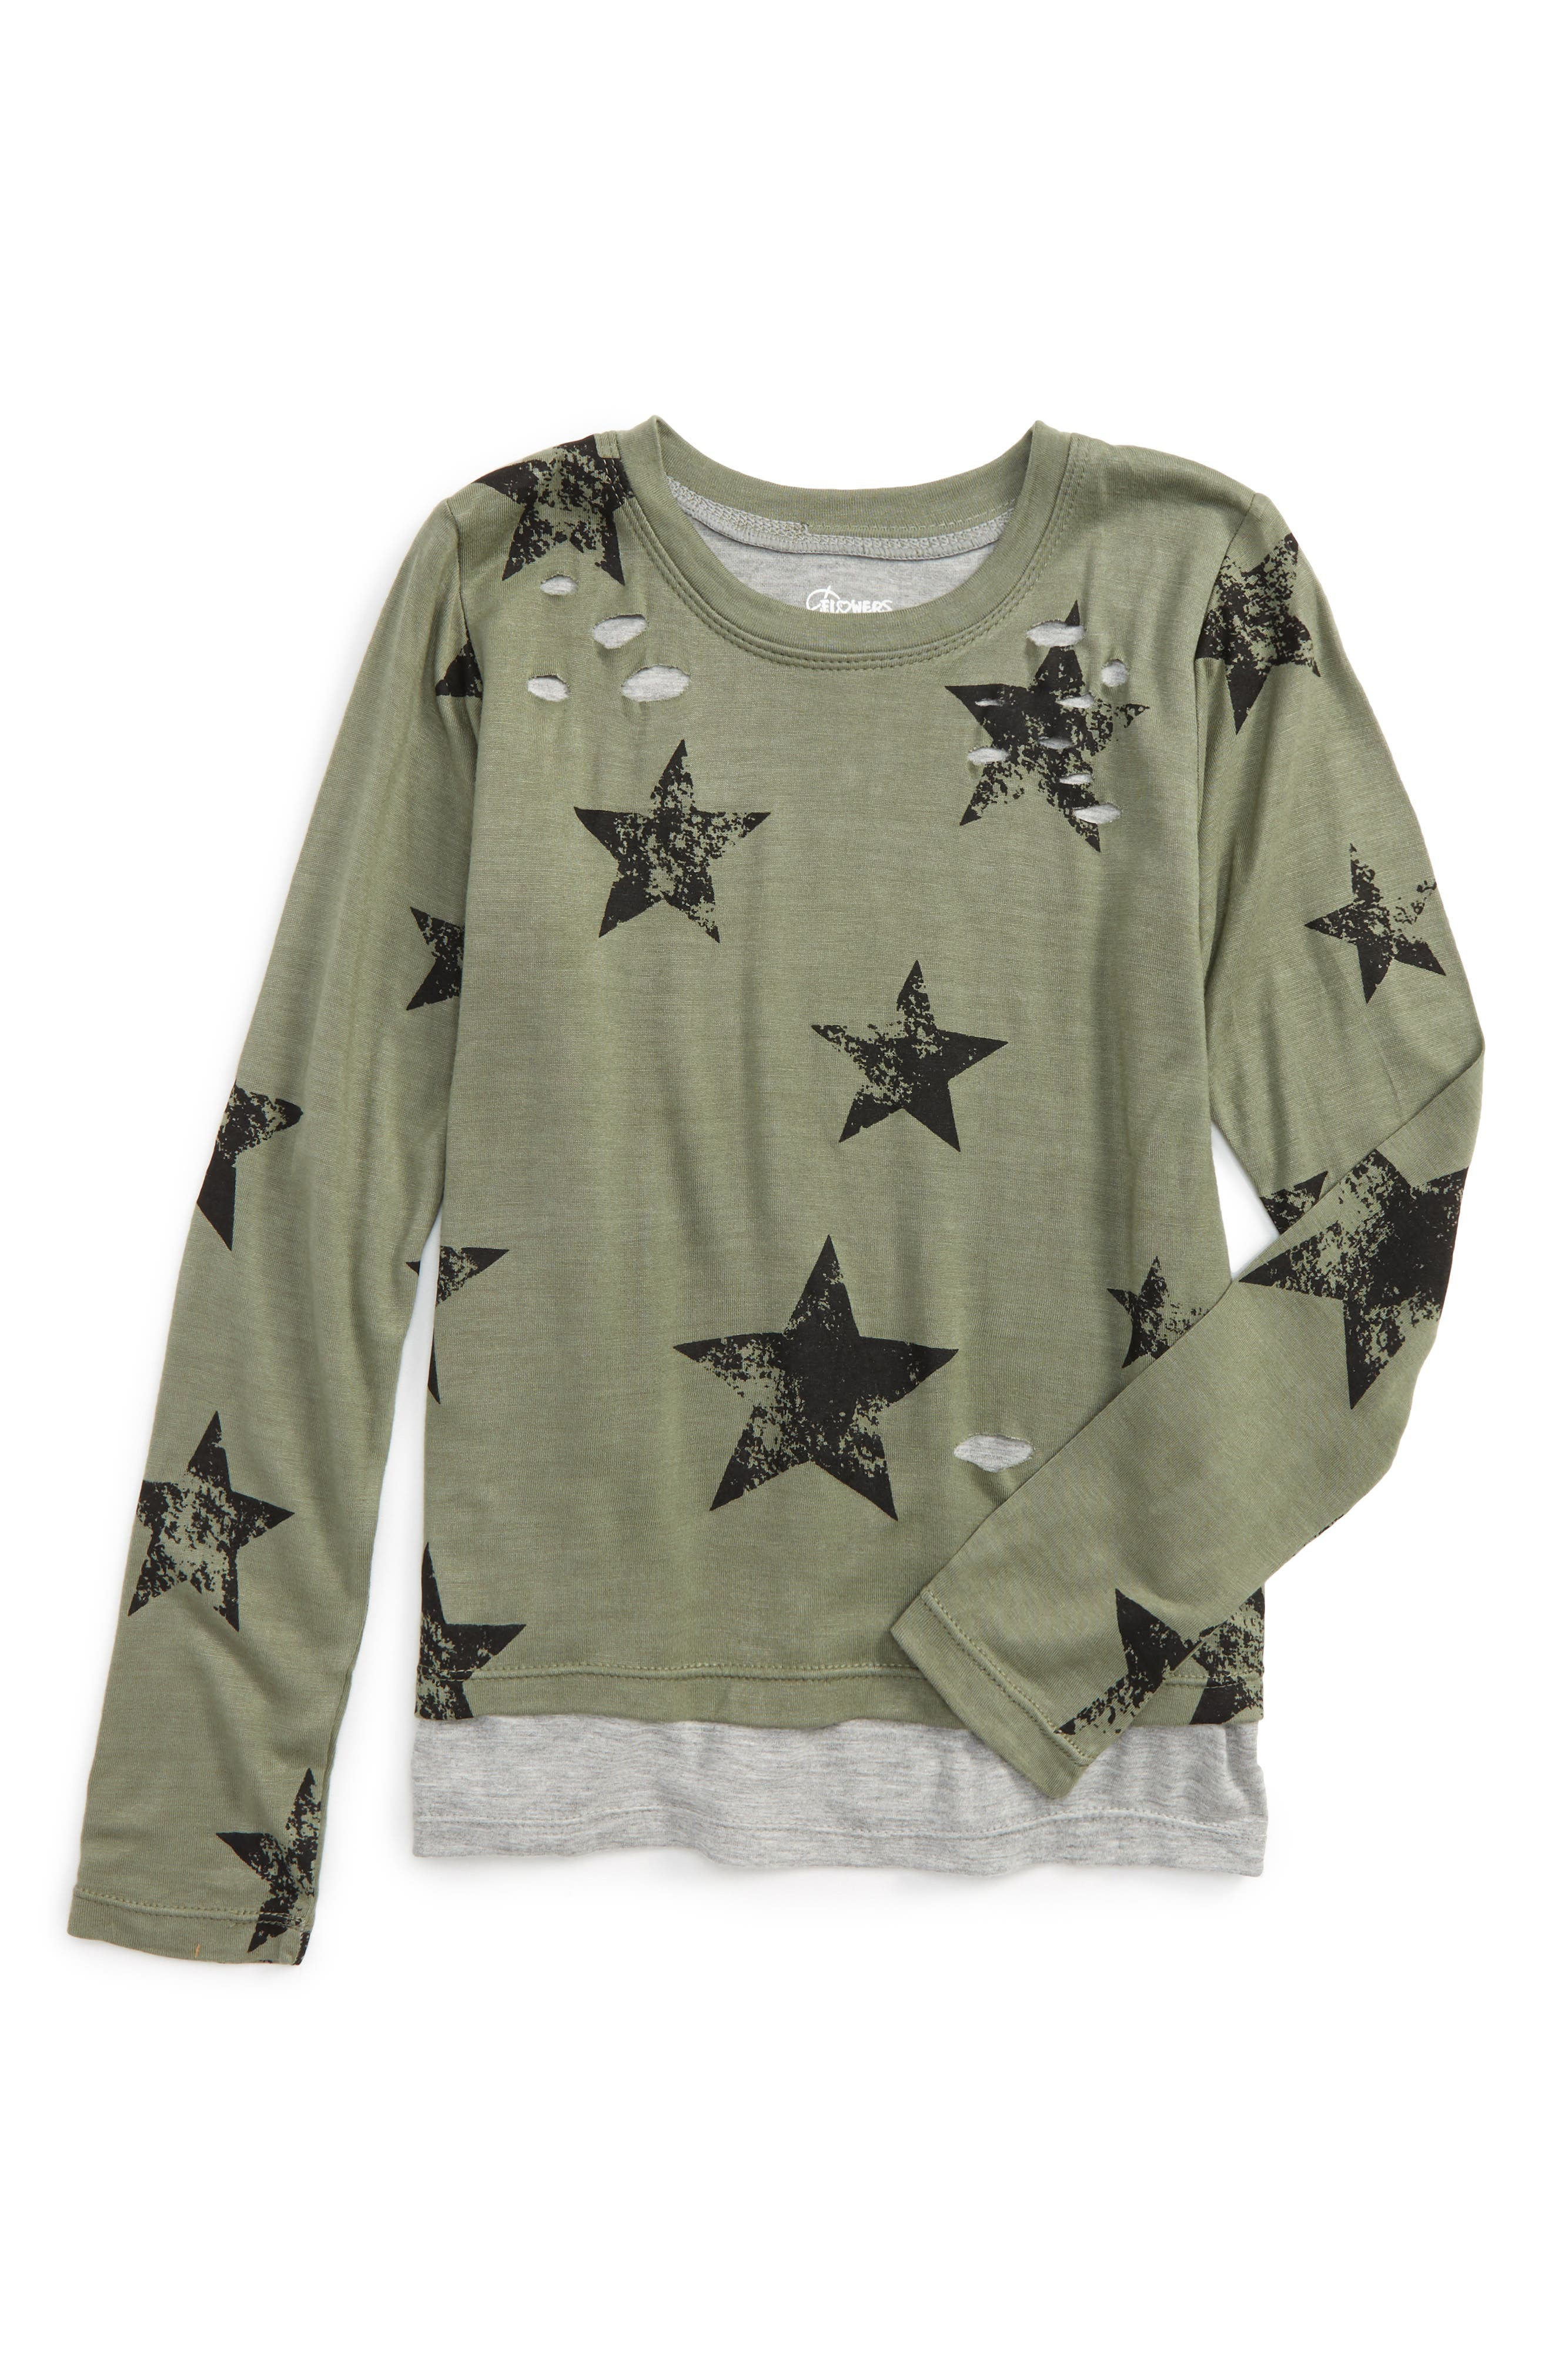 Alternate Image 1 Selected - Flowers by Zoe Star Layered Top (Little Girls & Big Girls)